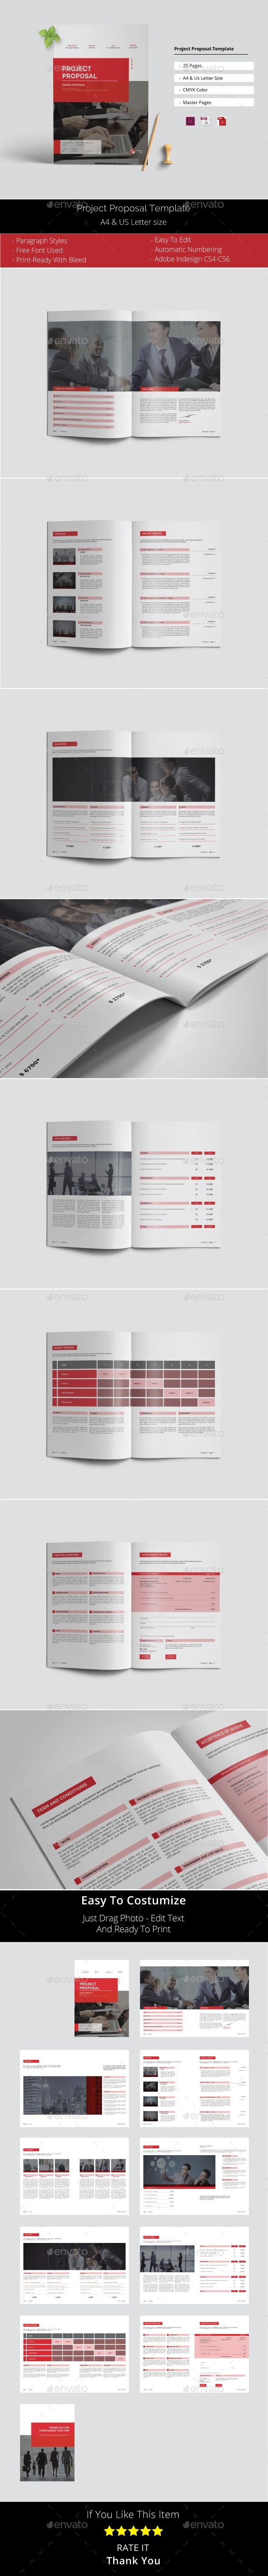 Project Proposal Template InDesign INDD - 20 Pages A4 & US Letter Size